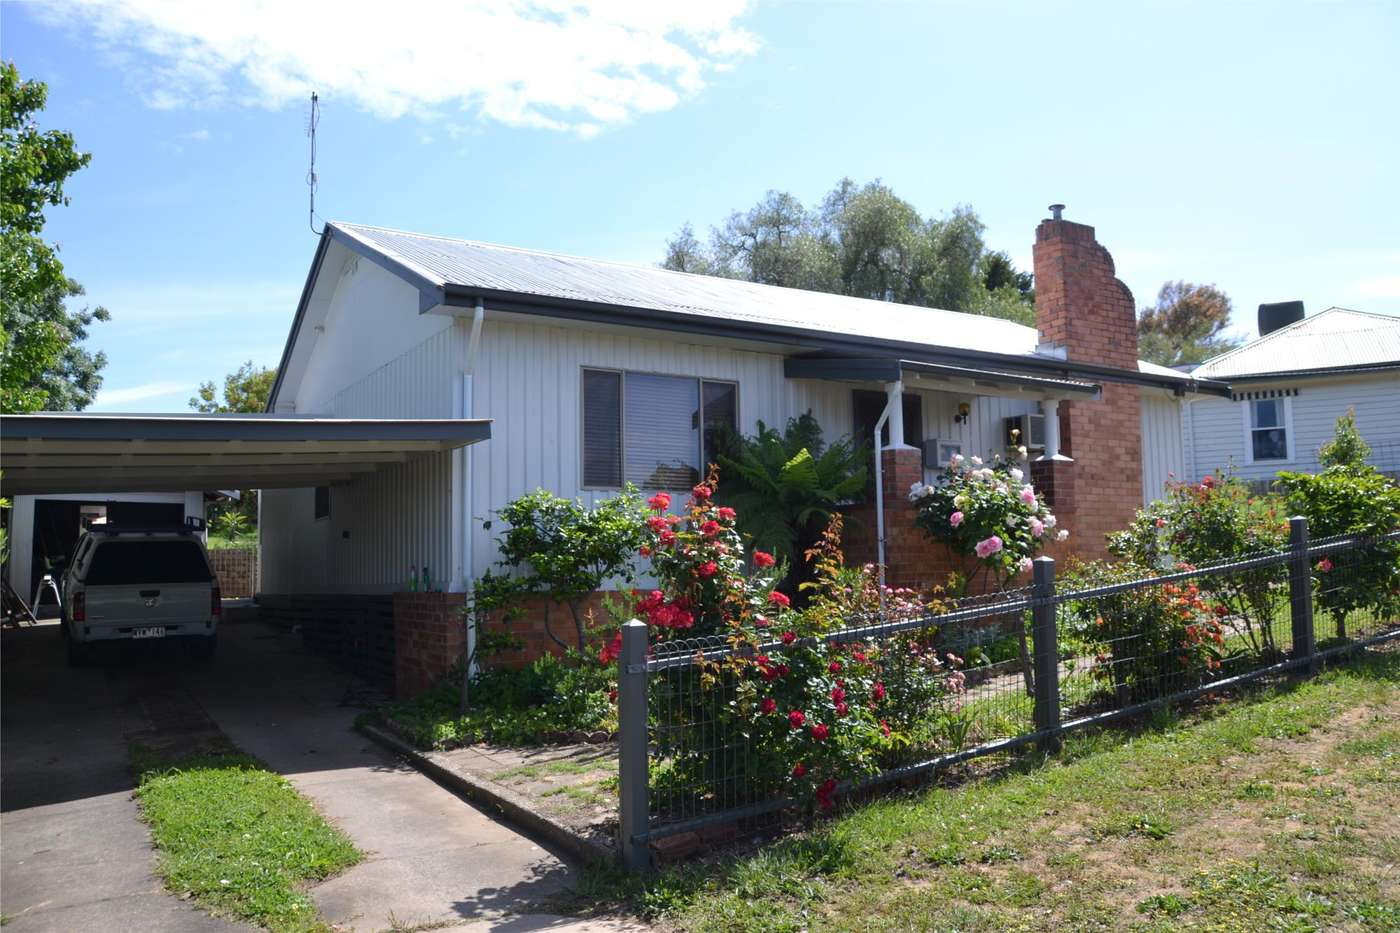 Main view of Homely house listing, 49 McGrath Street, Castlemaine, VIC 3450